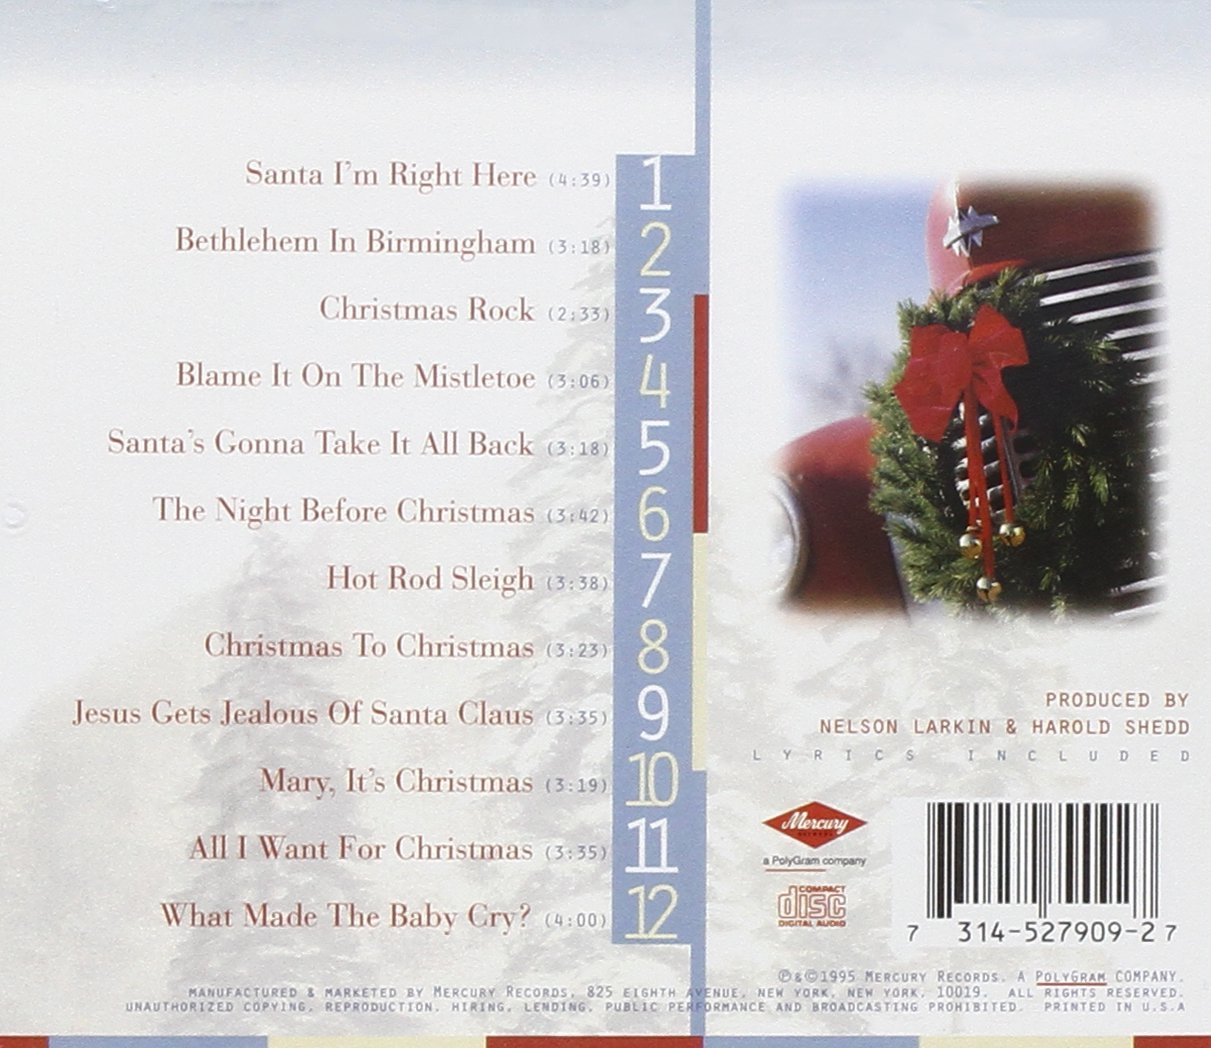 Toby Keith - Christmas To Christmas - Amazon.com Music